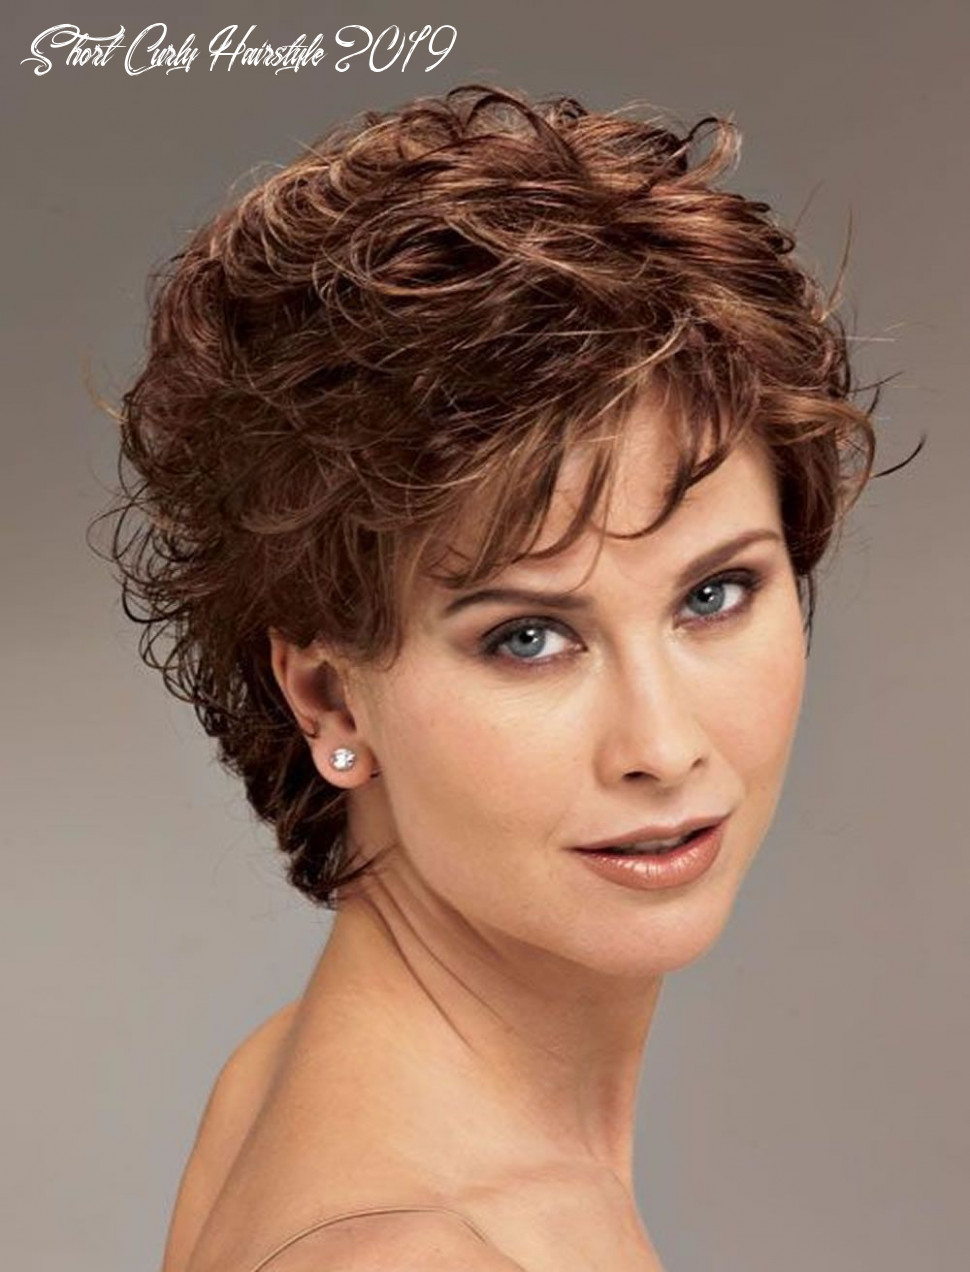 The Best Ideas for Hairstyles 12 for Women | Curly hair women ...